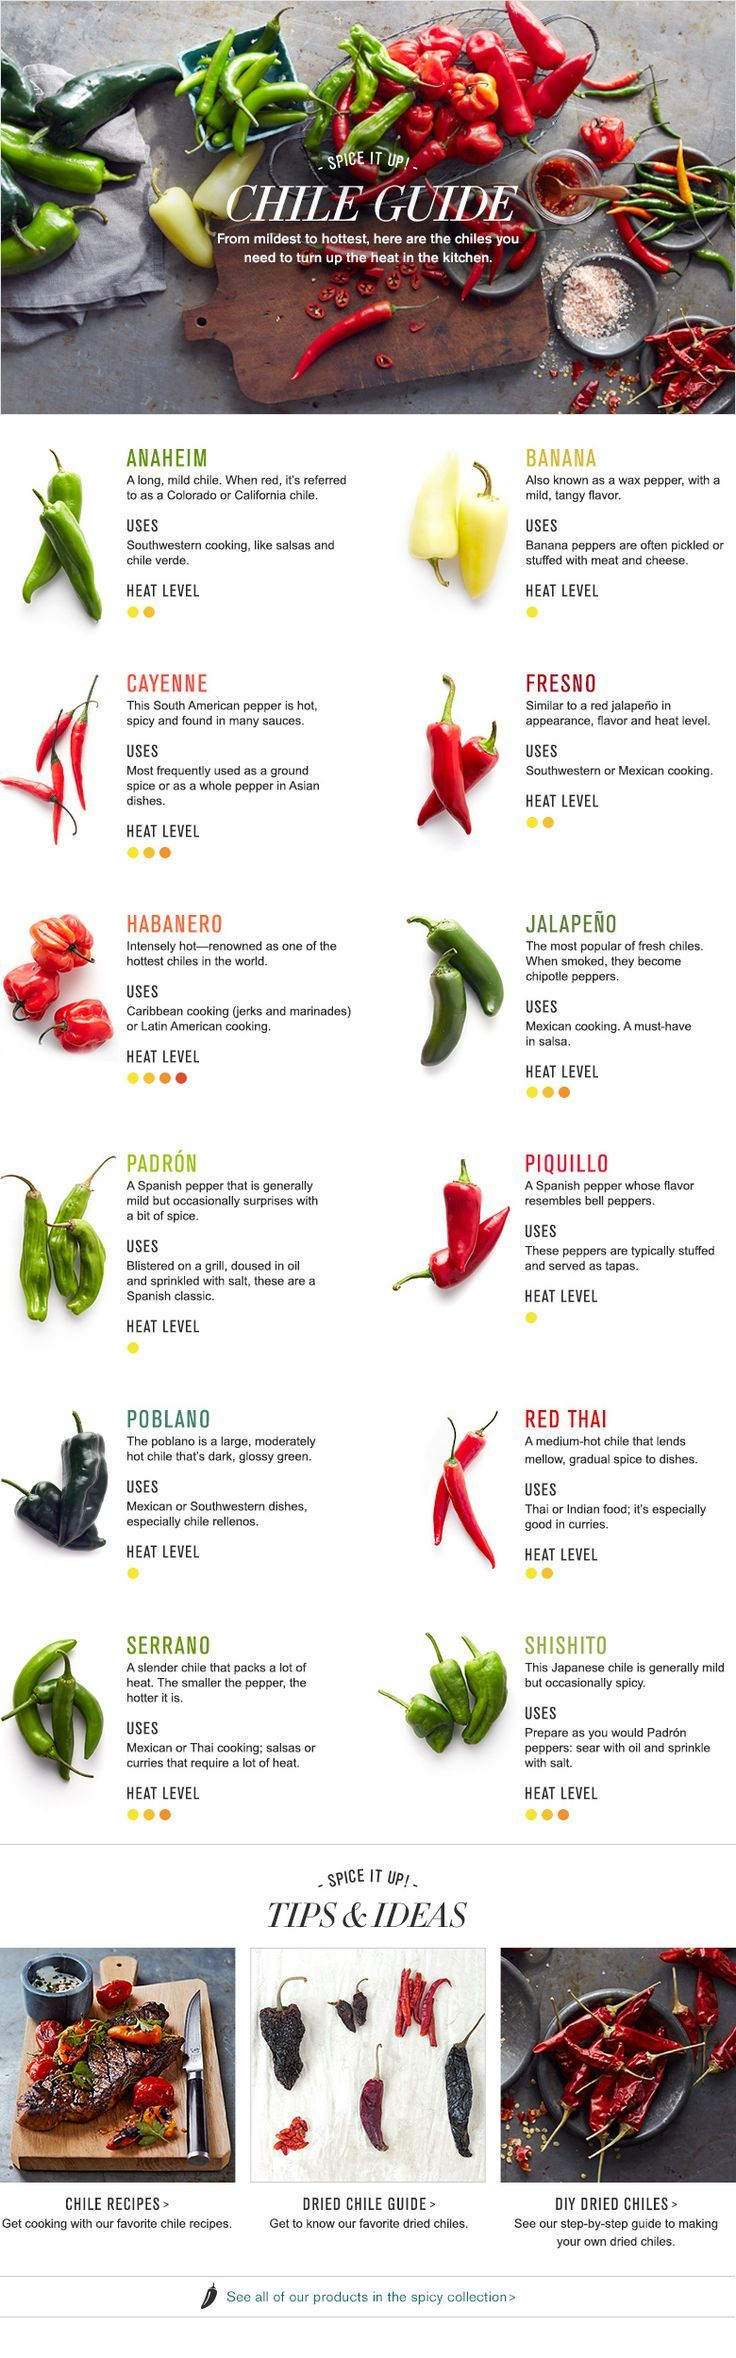 Here is a guide to many low-heat and medium-heat chile peppers in this handy chile pepper guide infographic: Source: http://www.williams-sonoma.com/pages/chile-guide.html